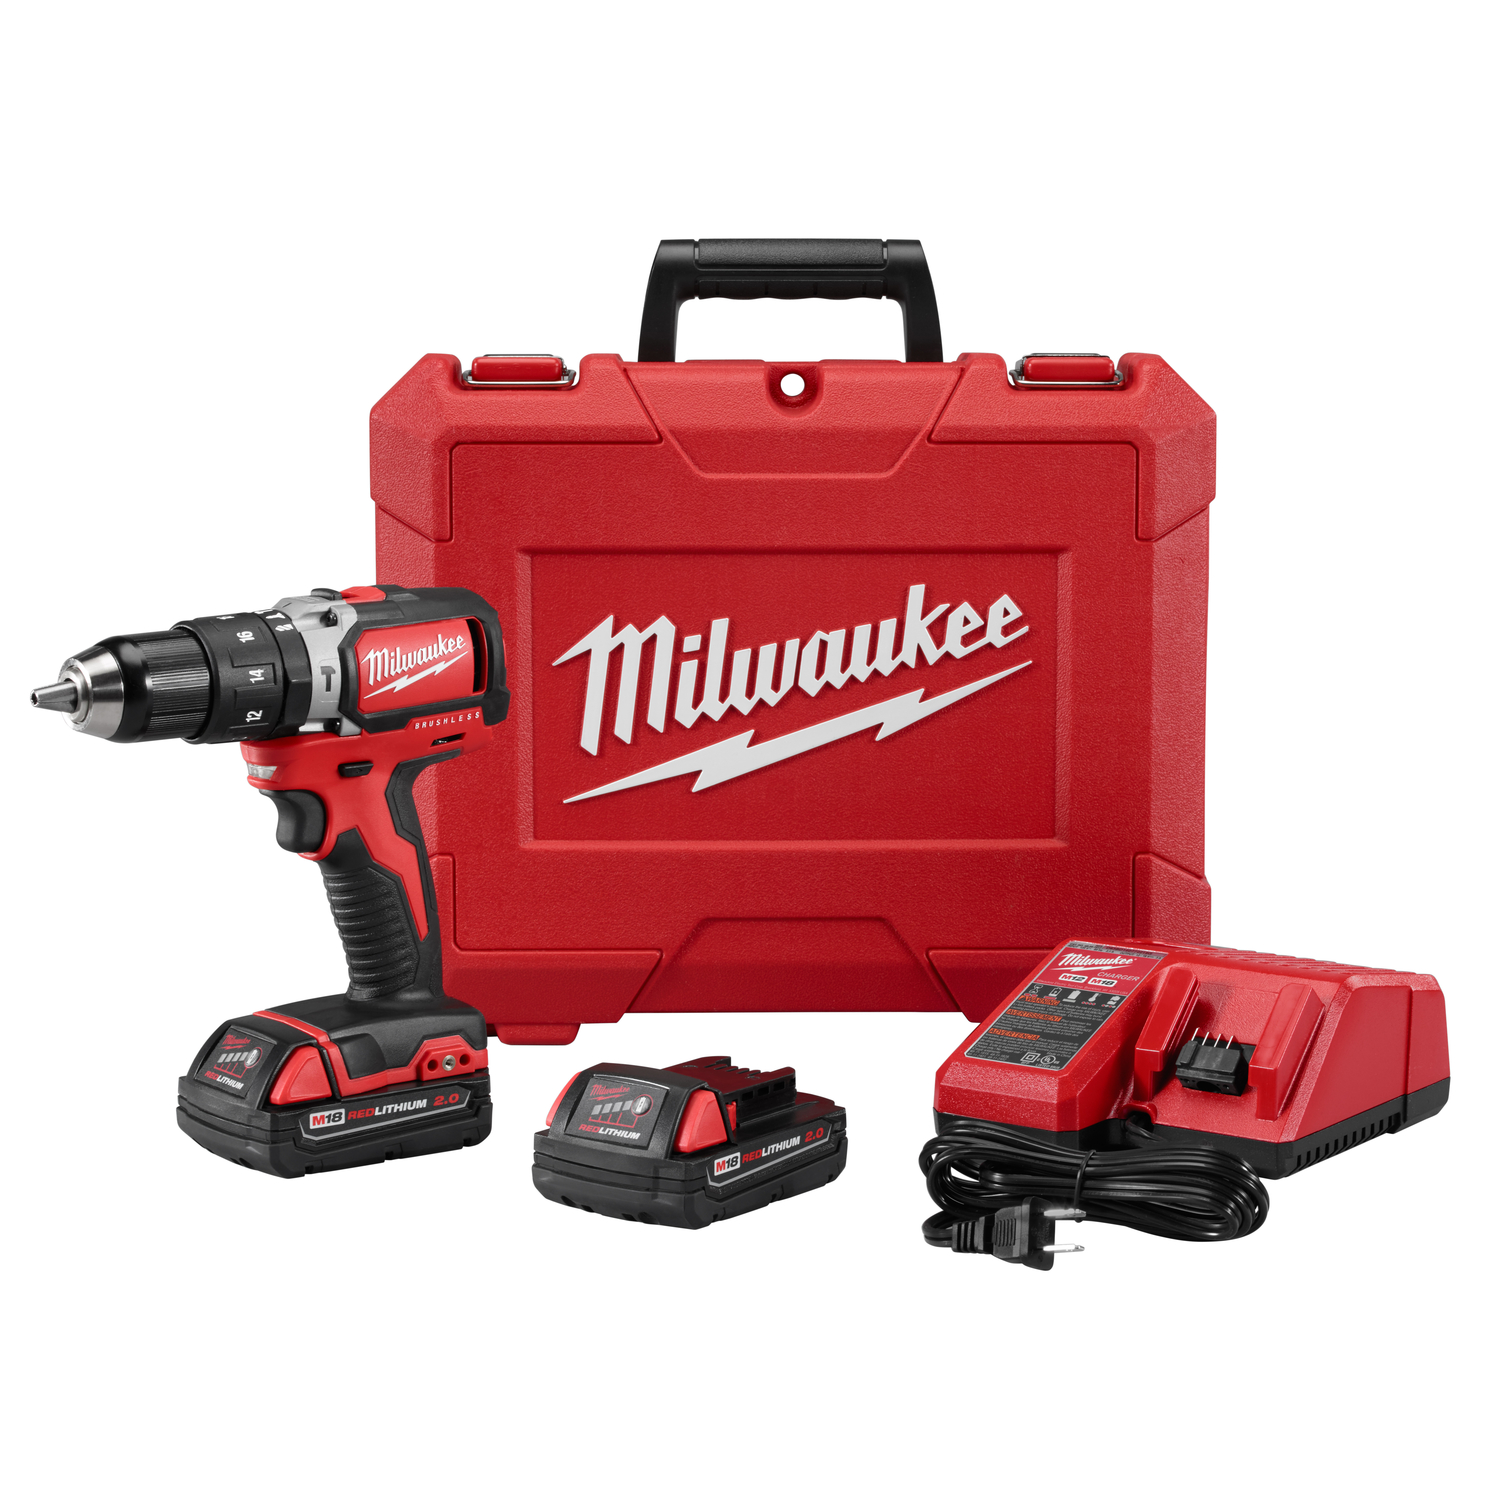 Milwaukee  M18  18 volt 1/2 in. Brushless Cordless Hammer Drill/Driver  Kit 1800 rpm 2 speed